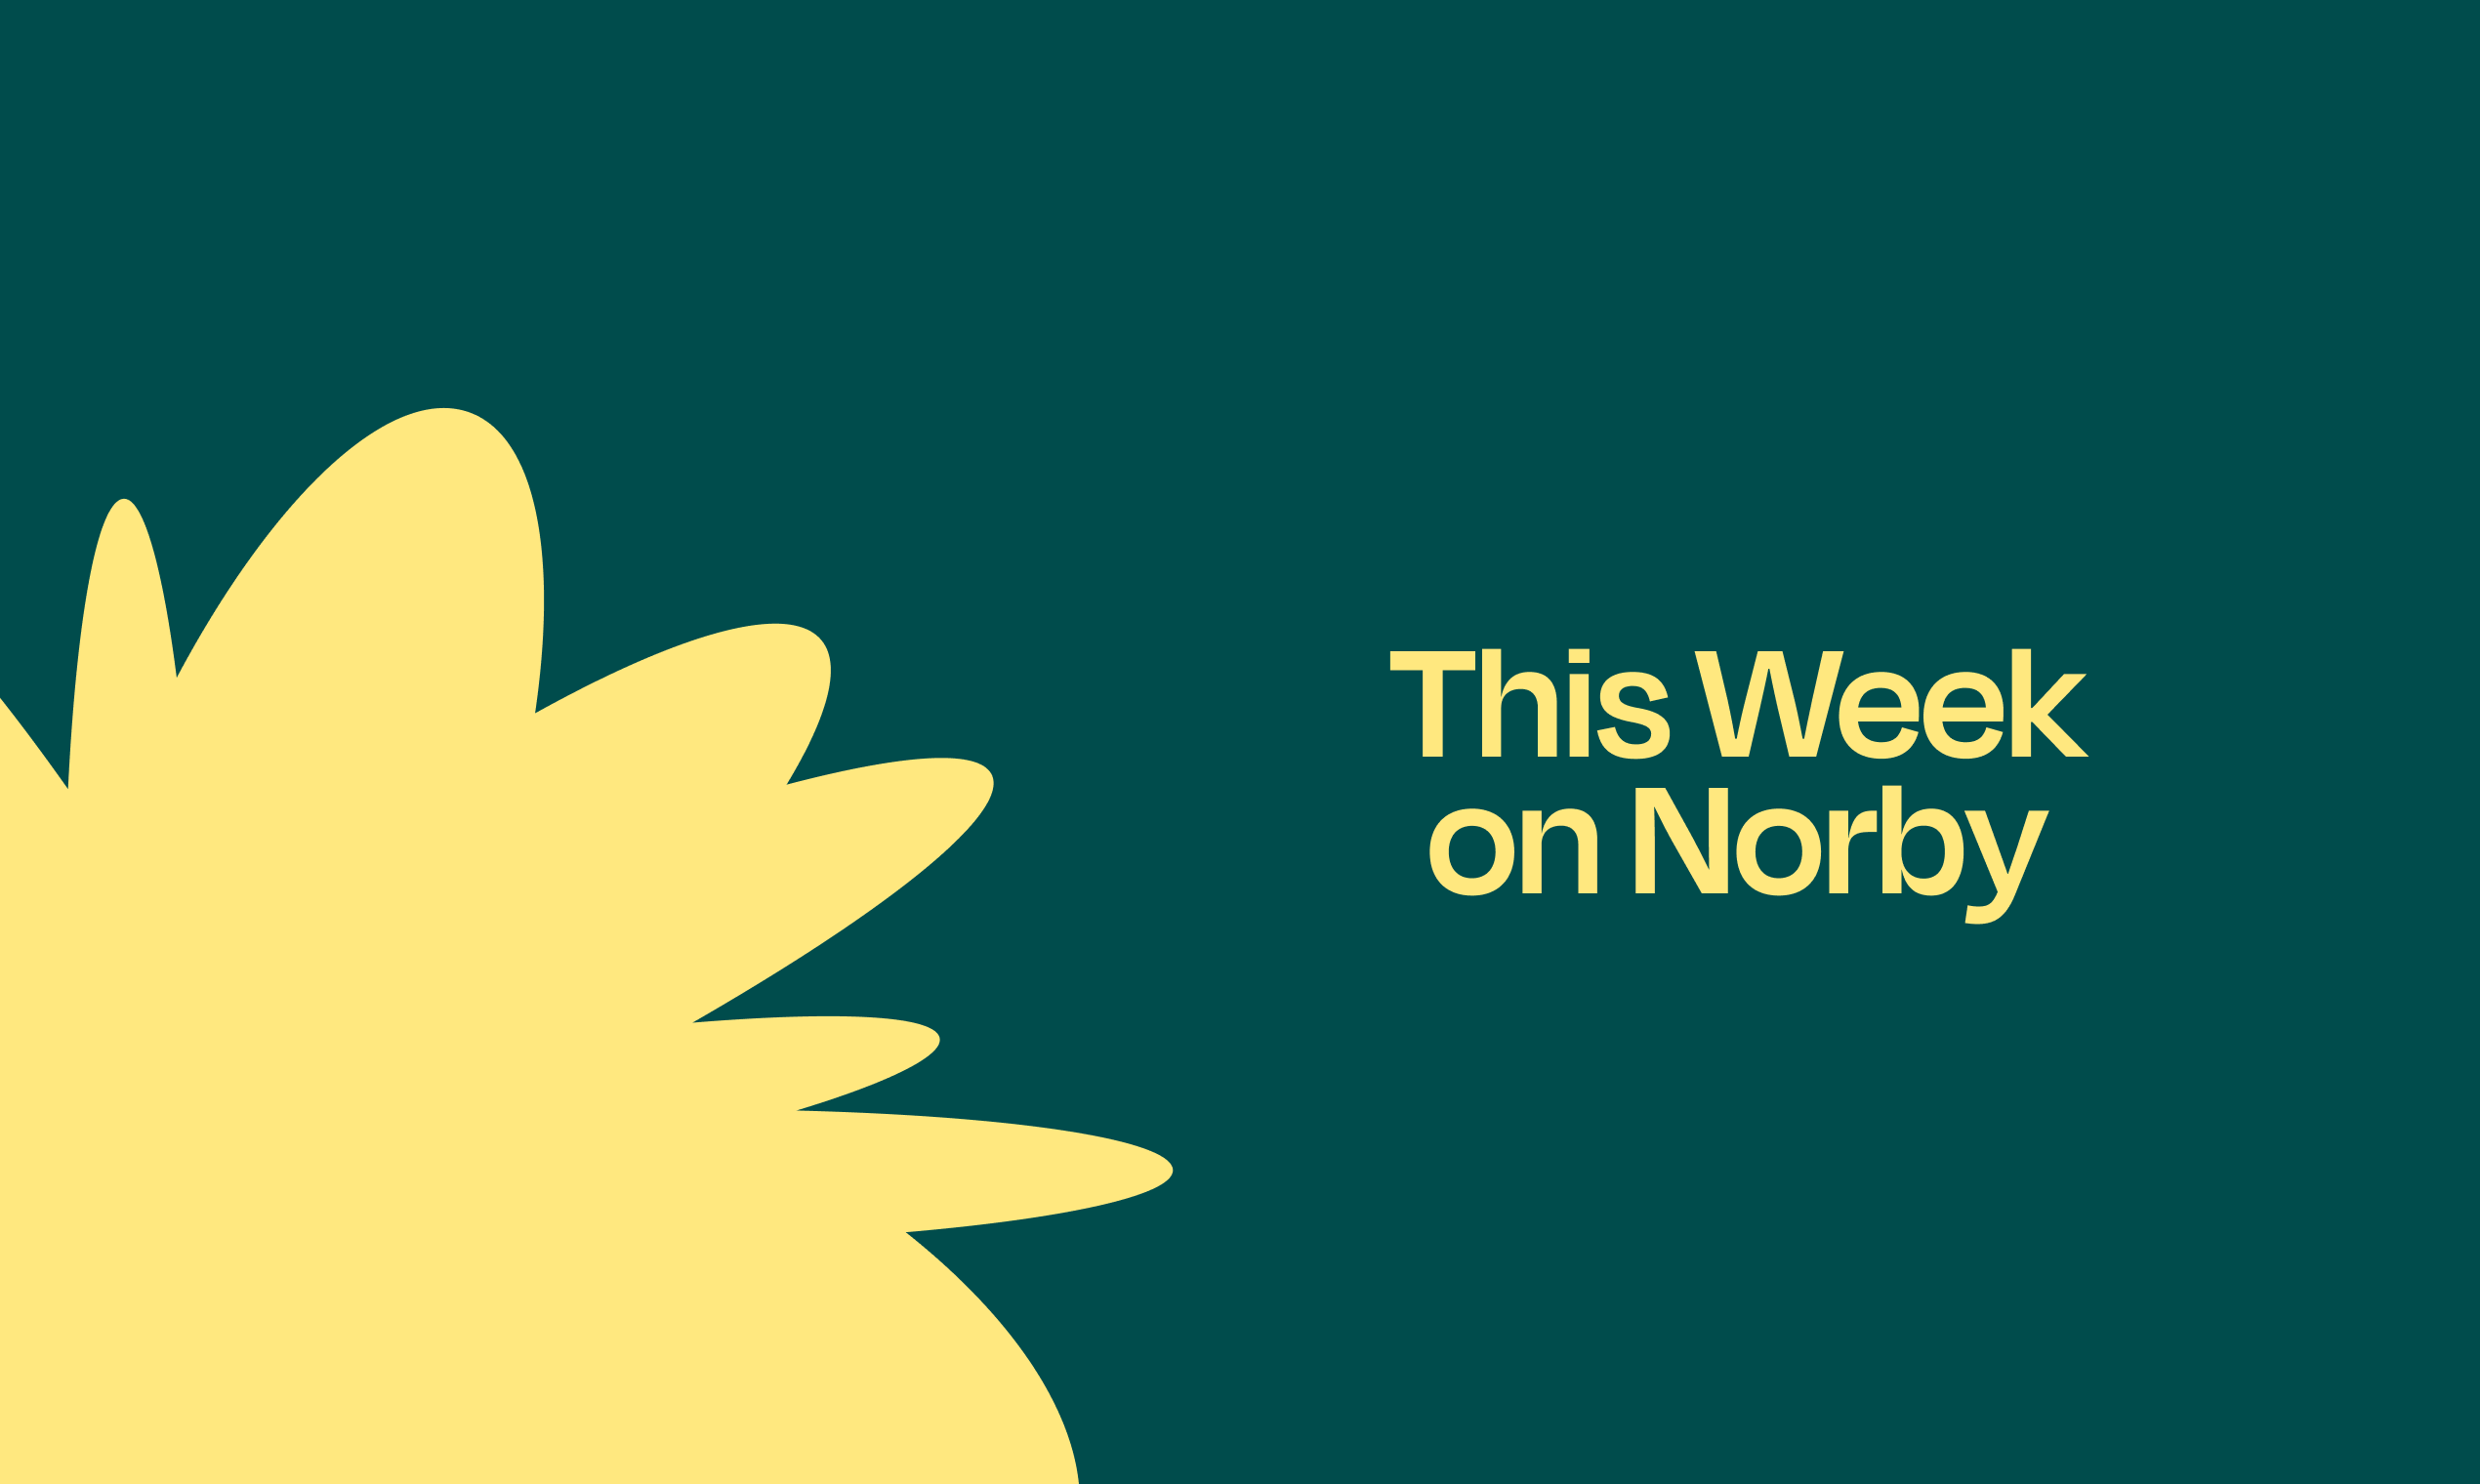 This Week On Norby: Monday, June 7, 2021